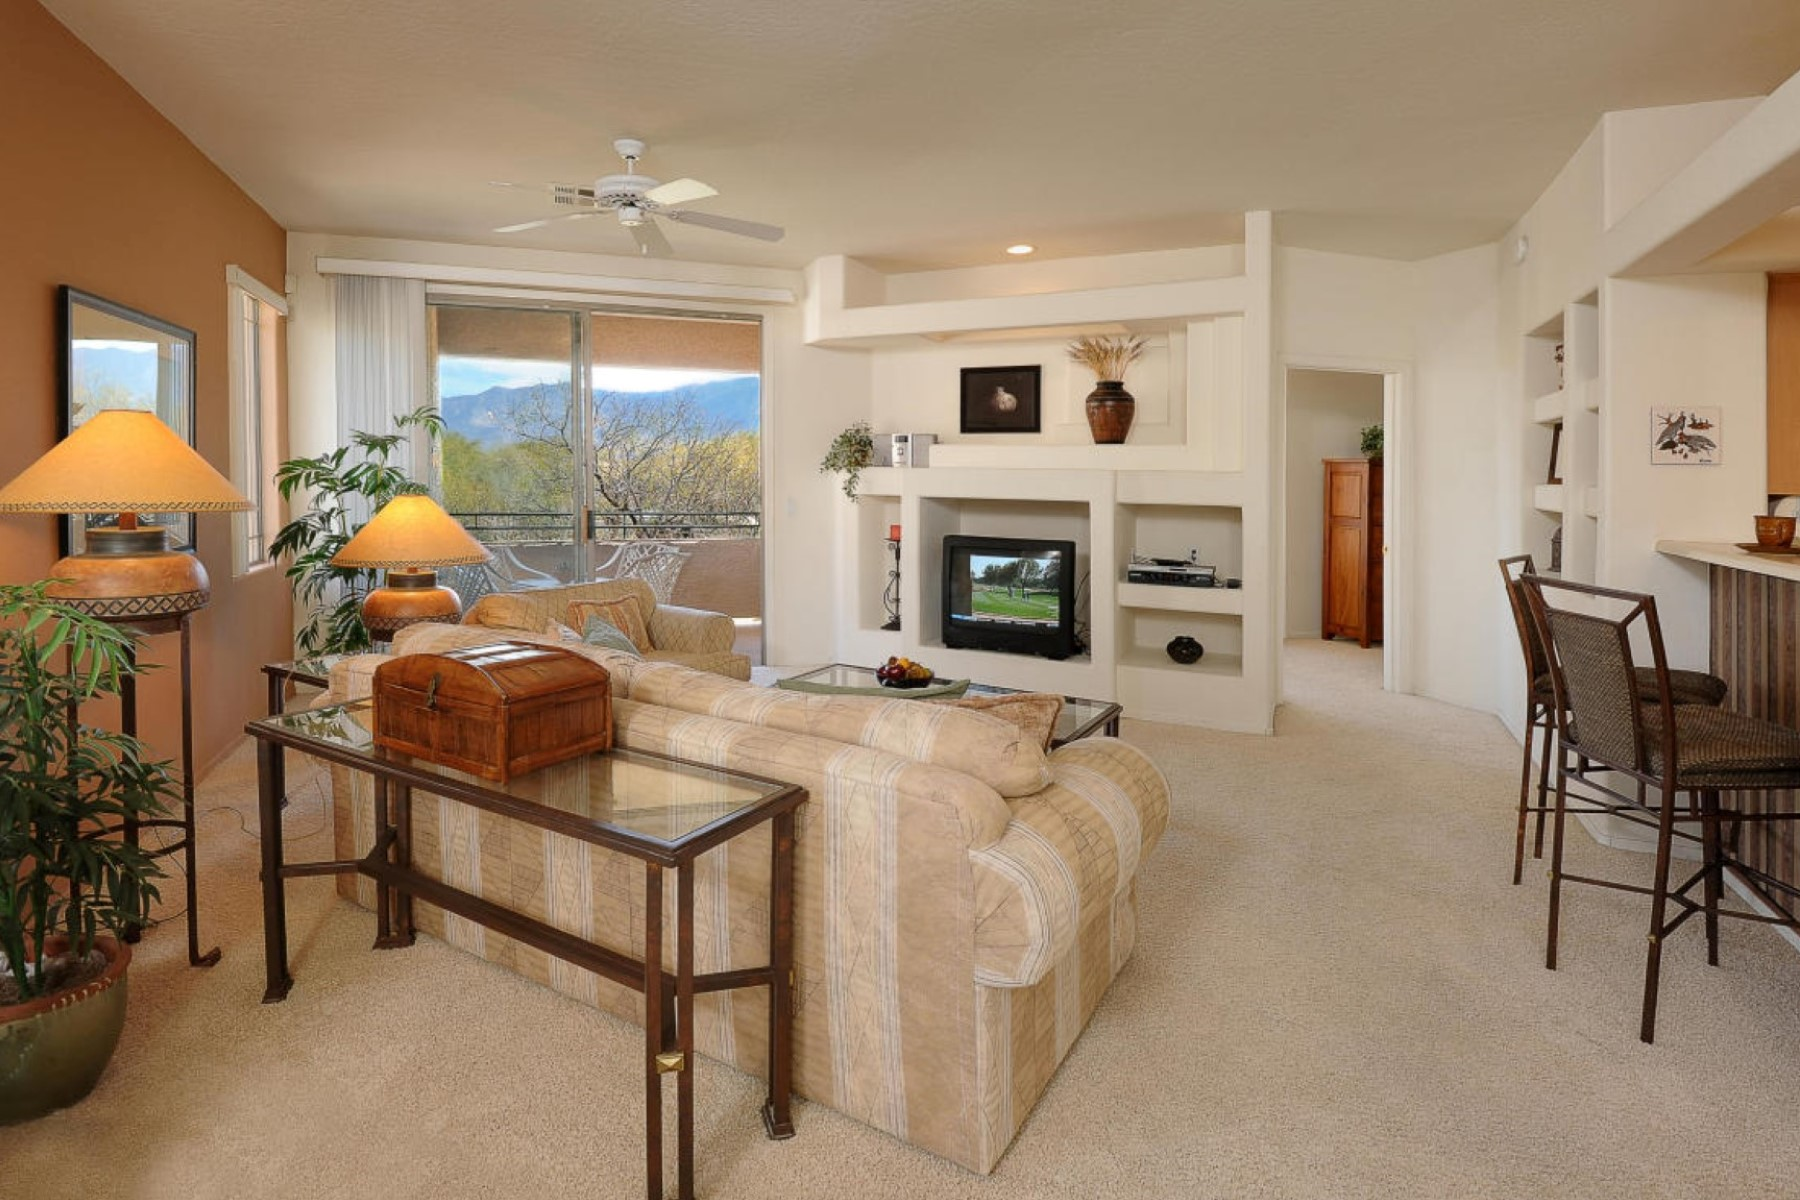 Nhà chung cư vì Bán tại Superb And Highly Sought-After Fully Furnished Condo In Oro Valley 755 W Vistoso Highlands #219 Tucson, Arizona 85755 Hoa Kỳ